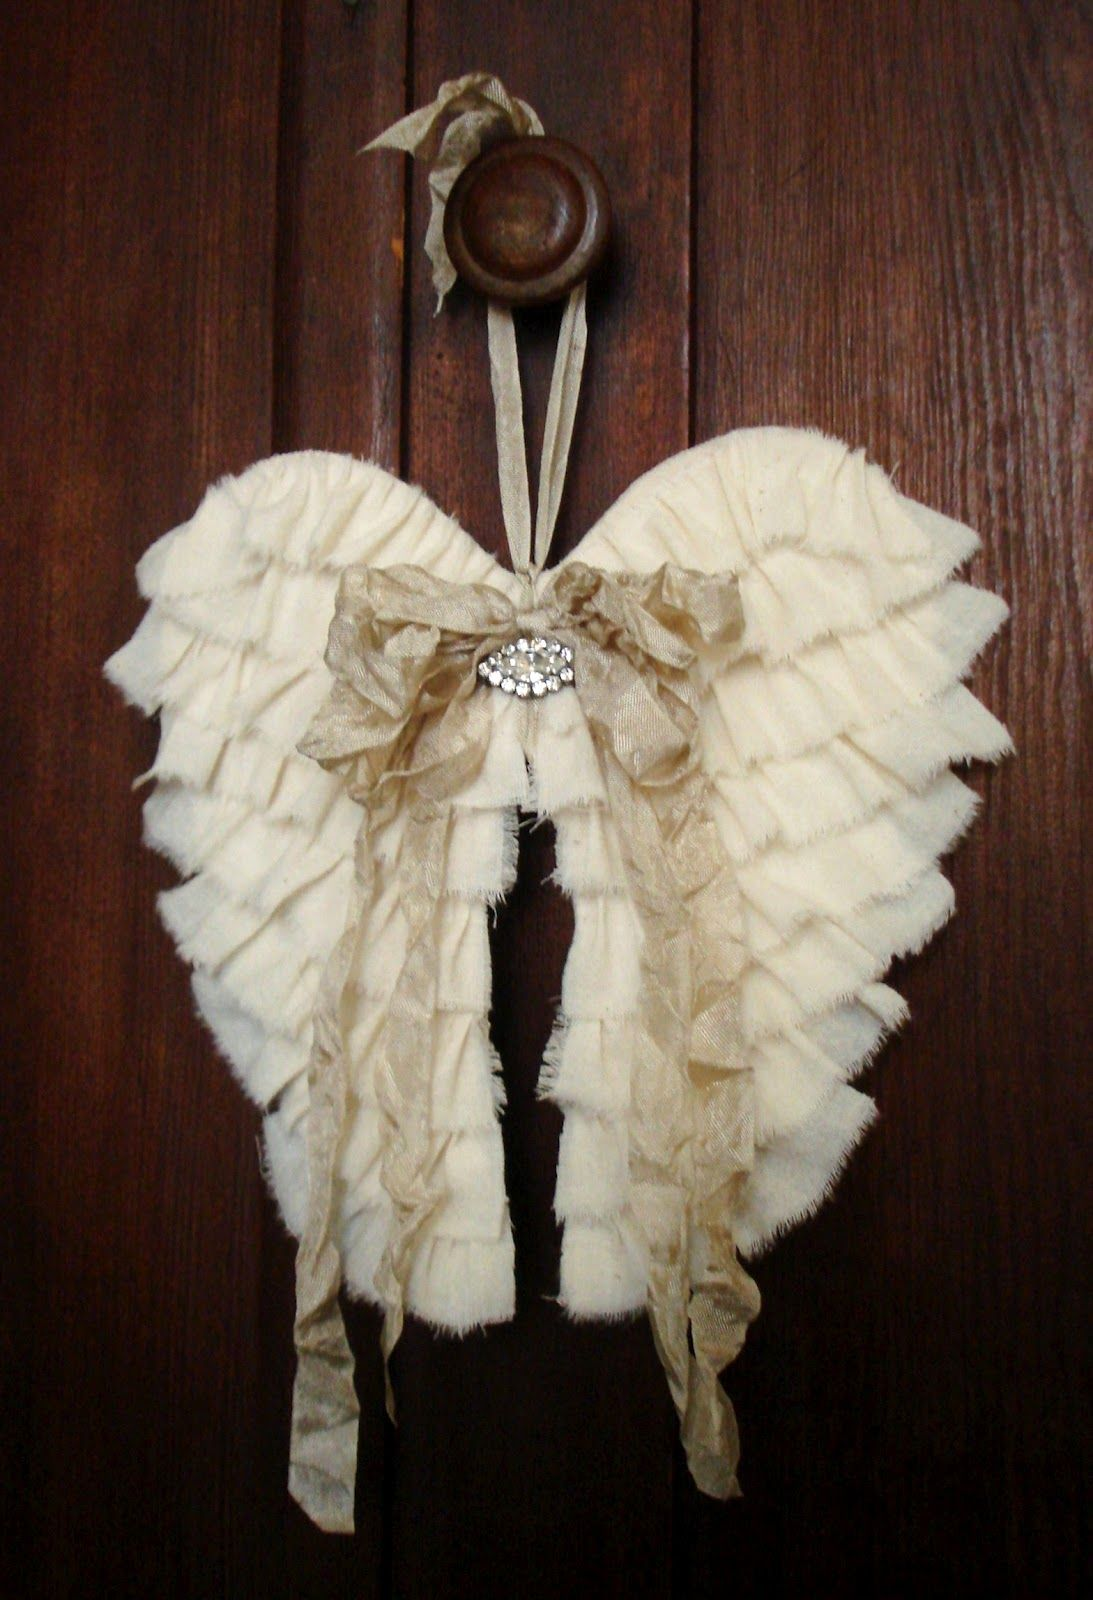 Angel wings fabric crafts angel crafts wings